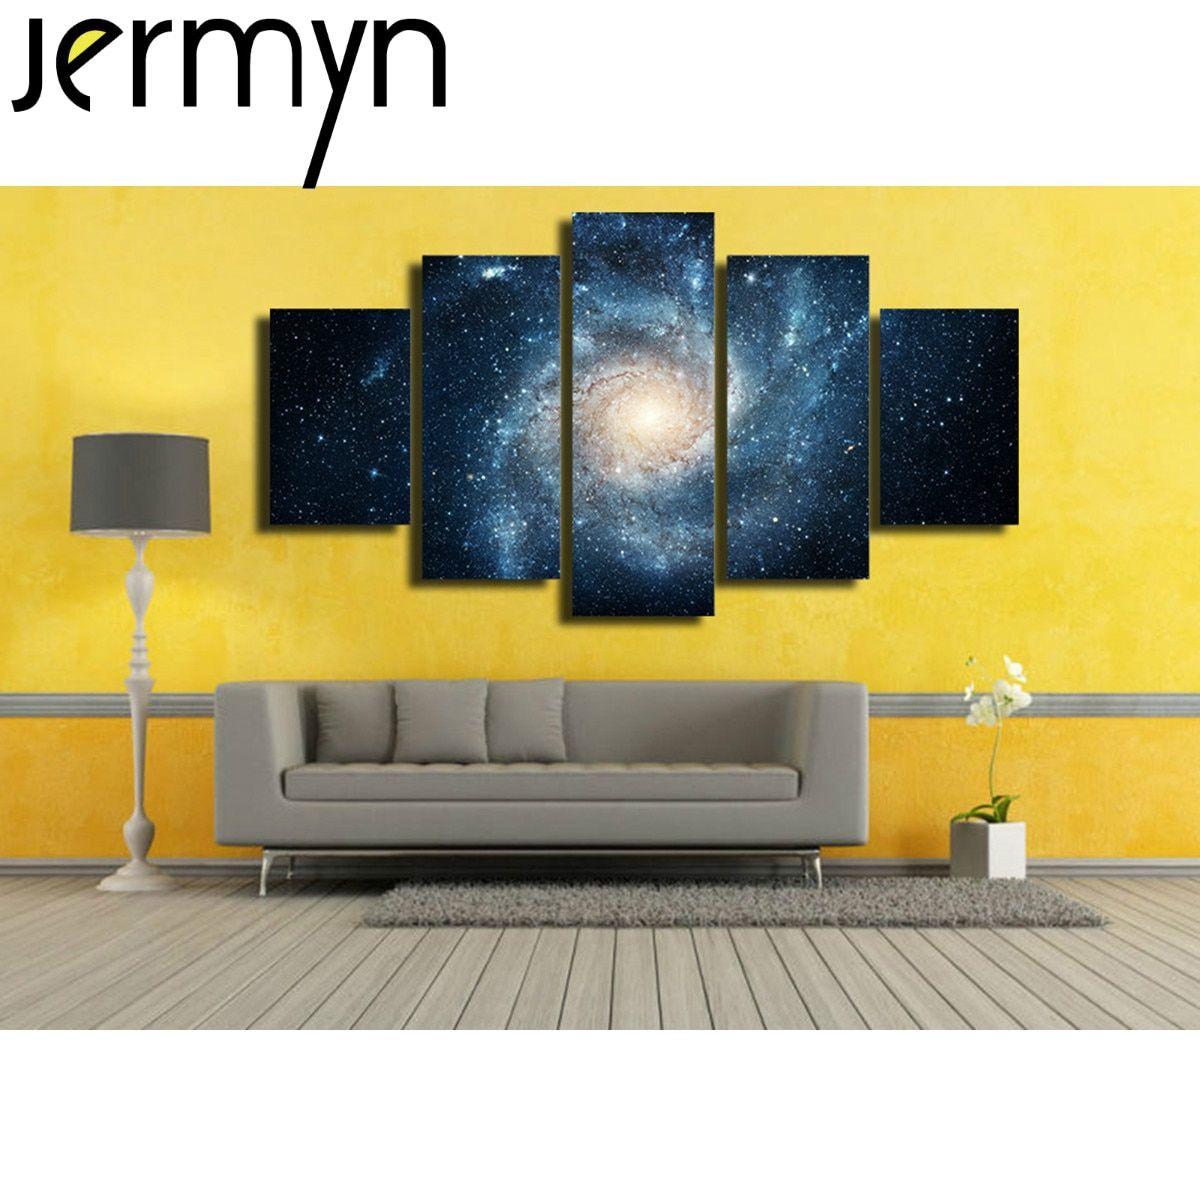 JERMYN 5 Piece Canvas Art Sky Galaxy Picture Painting Abstract Pictures for The Kitchen Home Wall Art Decoration Waterproof